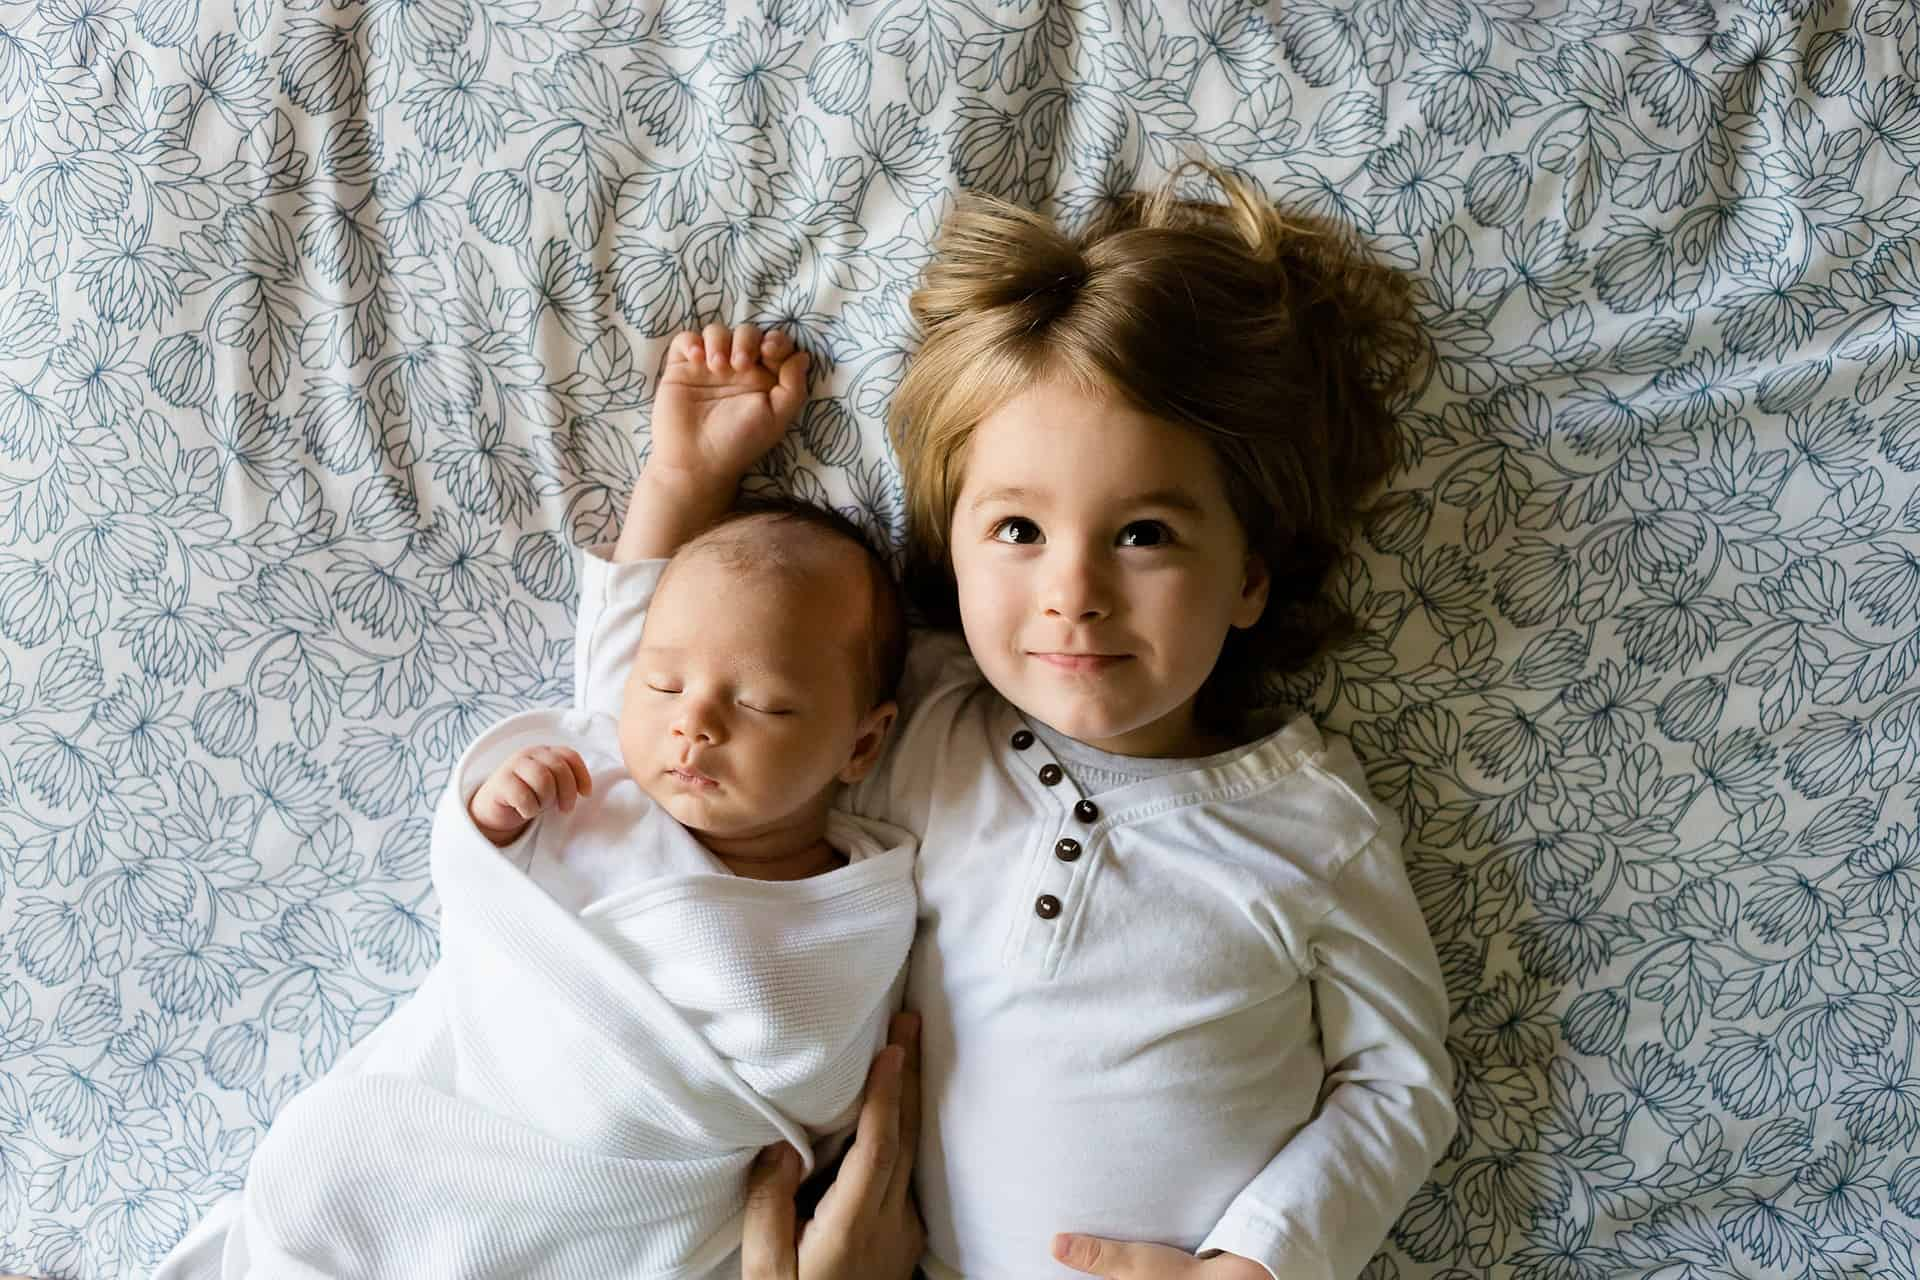 a girl with her baby brother/sister